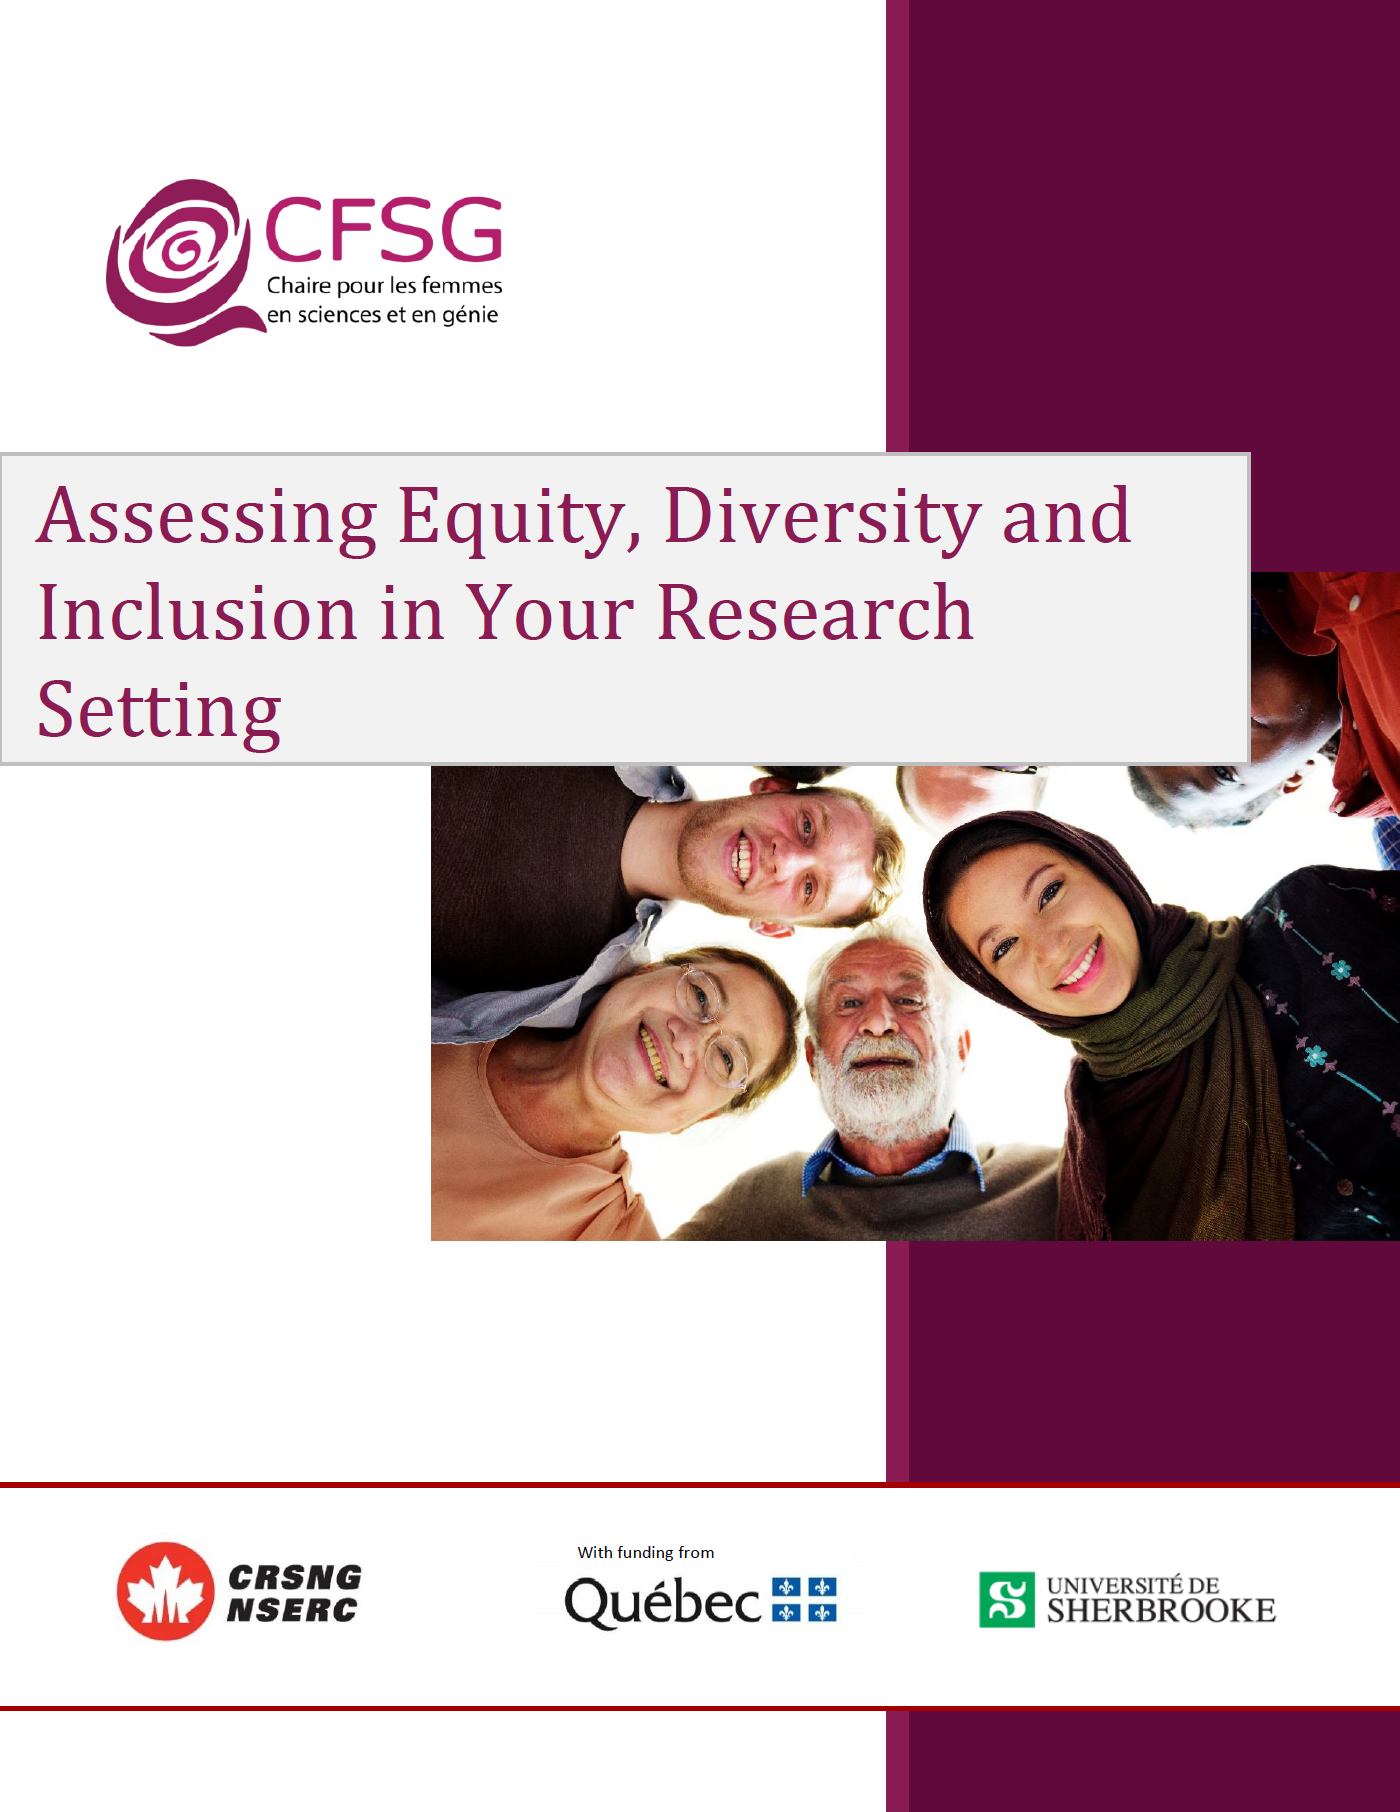 Assessing Equity, Diversity and Inclusion in Your Research Setting